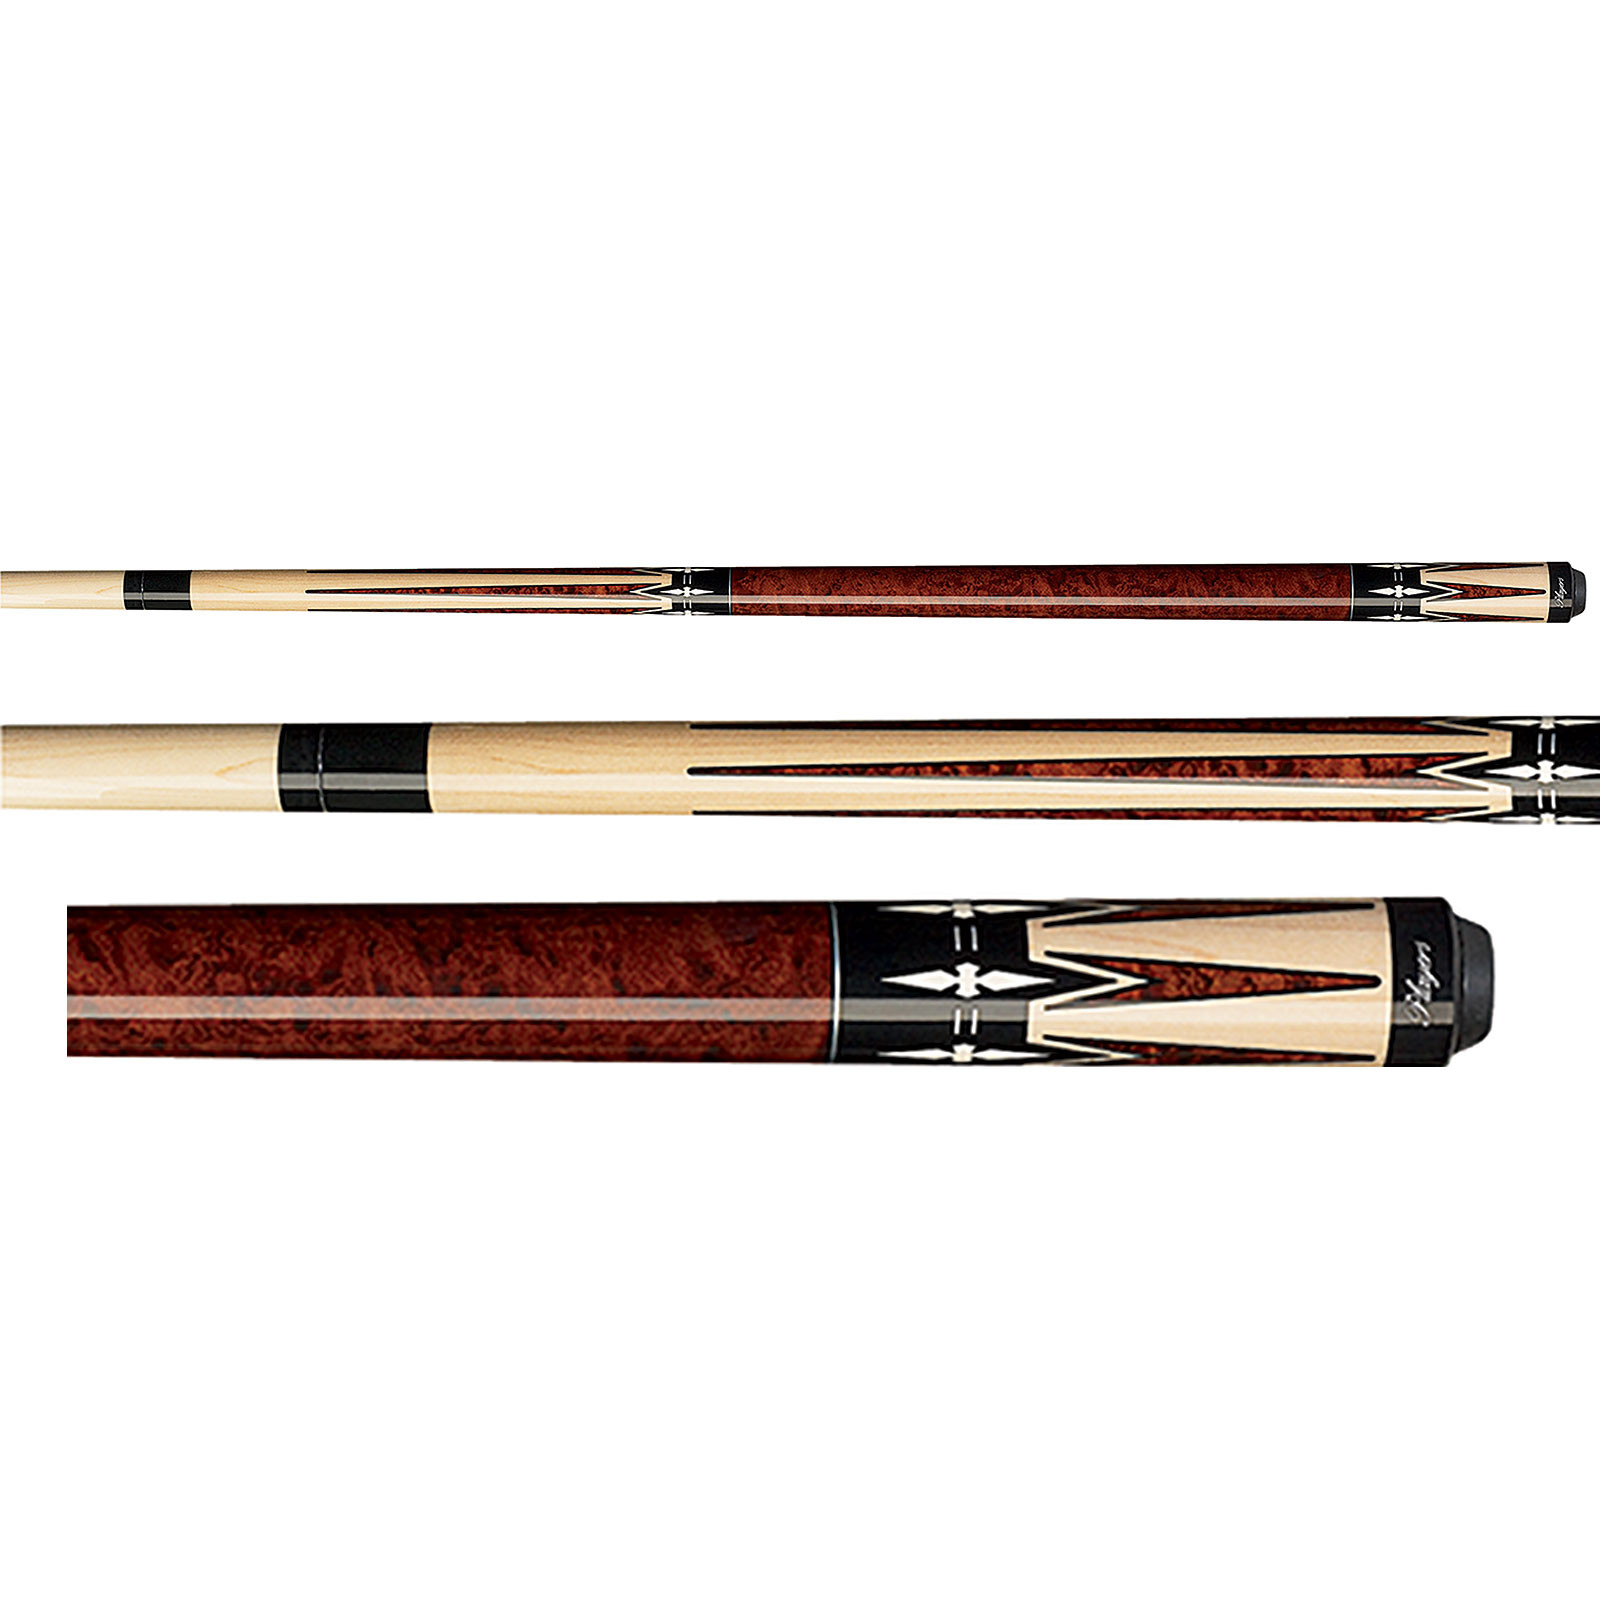 Players G-2290 Walnut Brown Pool Cue Stick